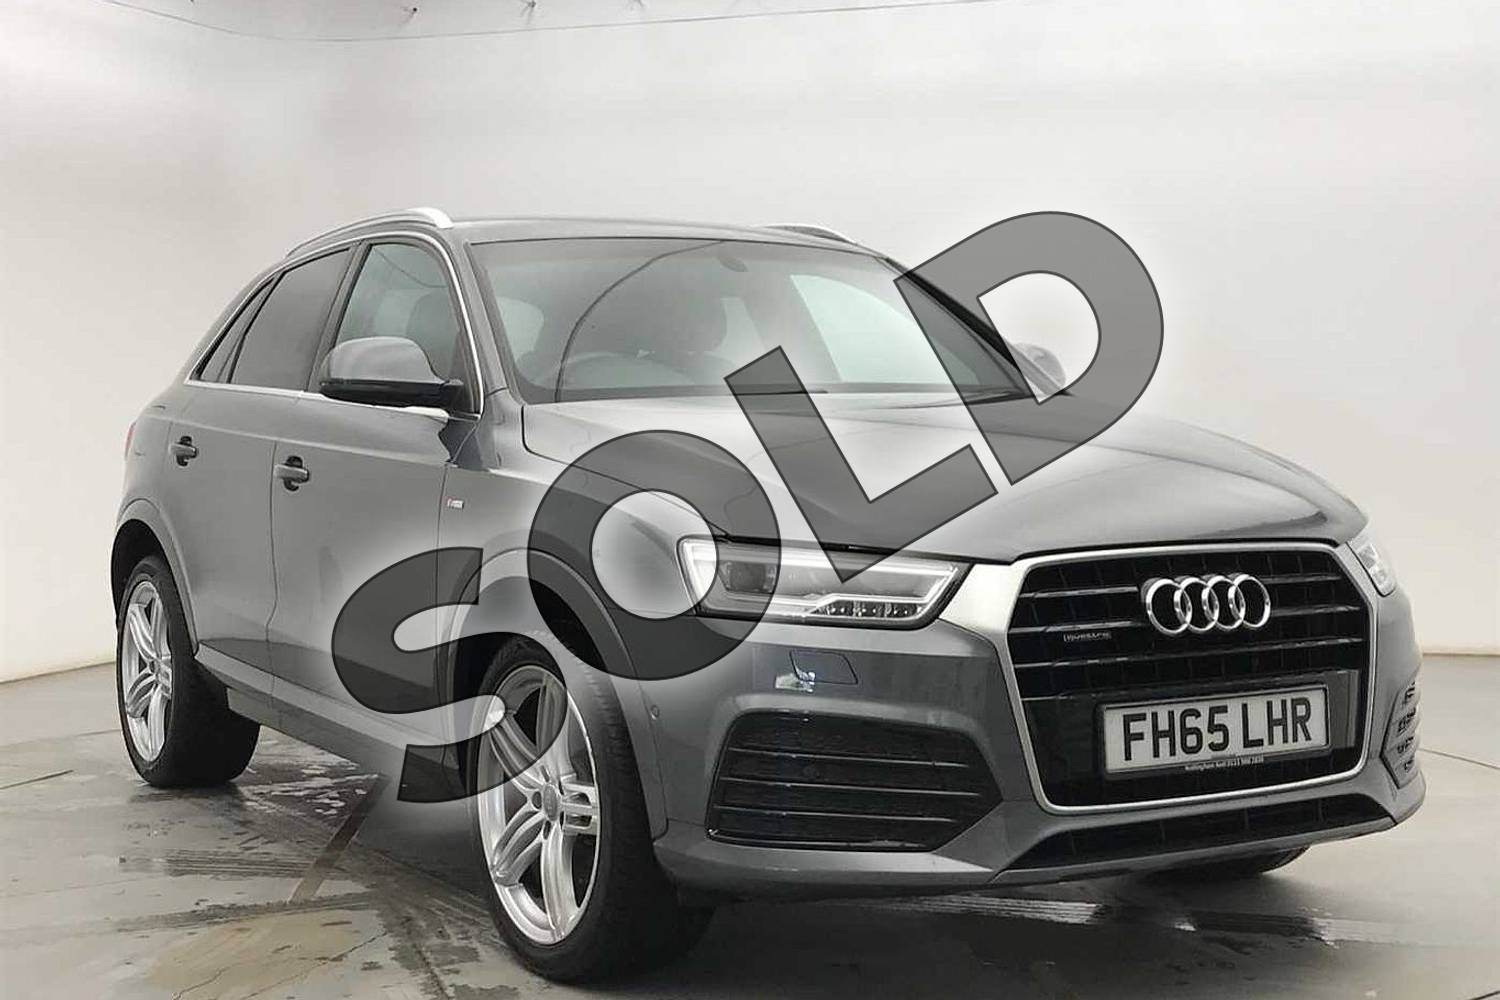 2015 Audi Q3 Estate Special Editions Special Editions 2.0 TDI Quattro S Line Plus 5dr in Monsoon Grey Metallic at Coventry Audi